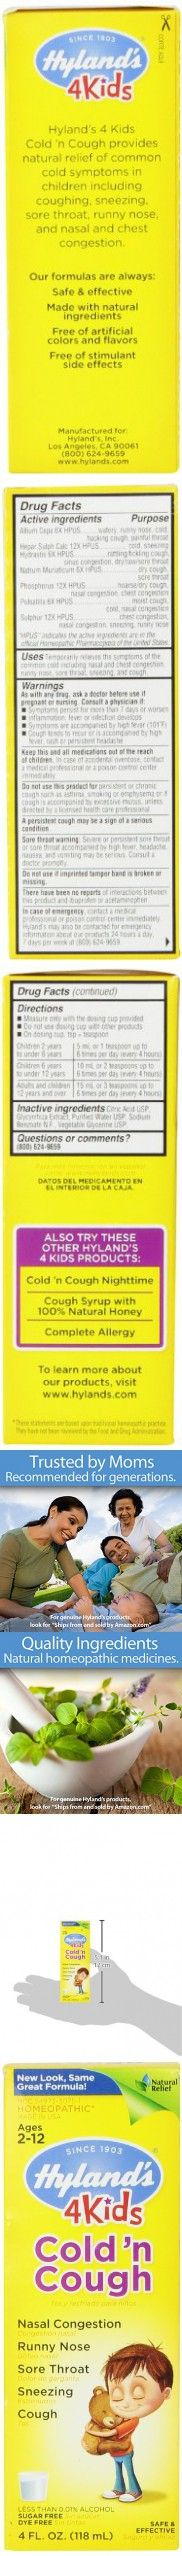 Hyland's 4 Kids Cold and Cough Liquid, Safe and Natural Relief of Cold Symptoms for Children, 4 Ounce